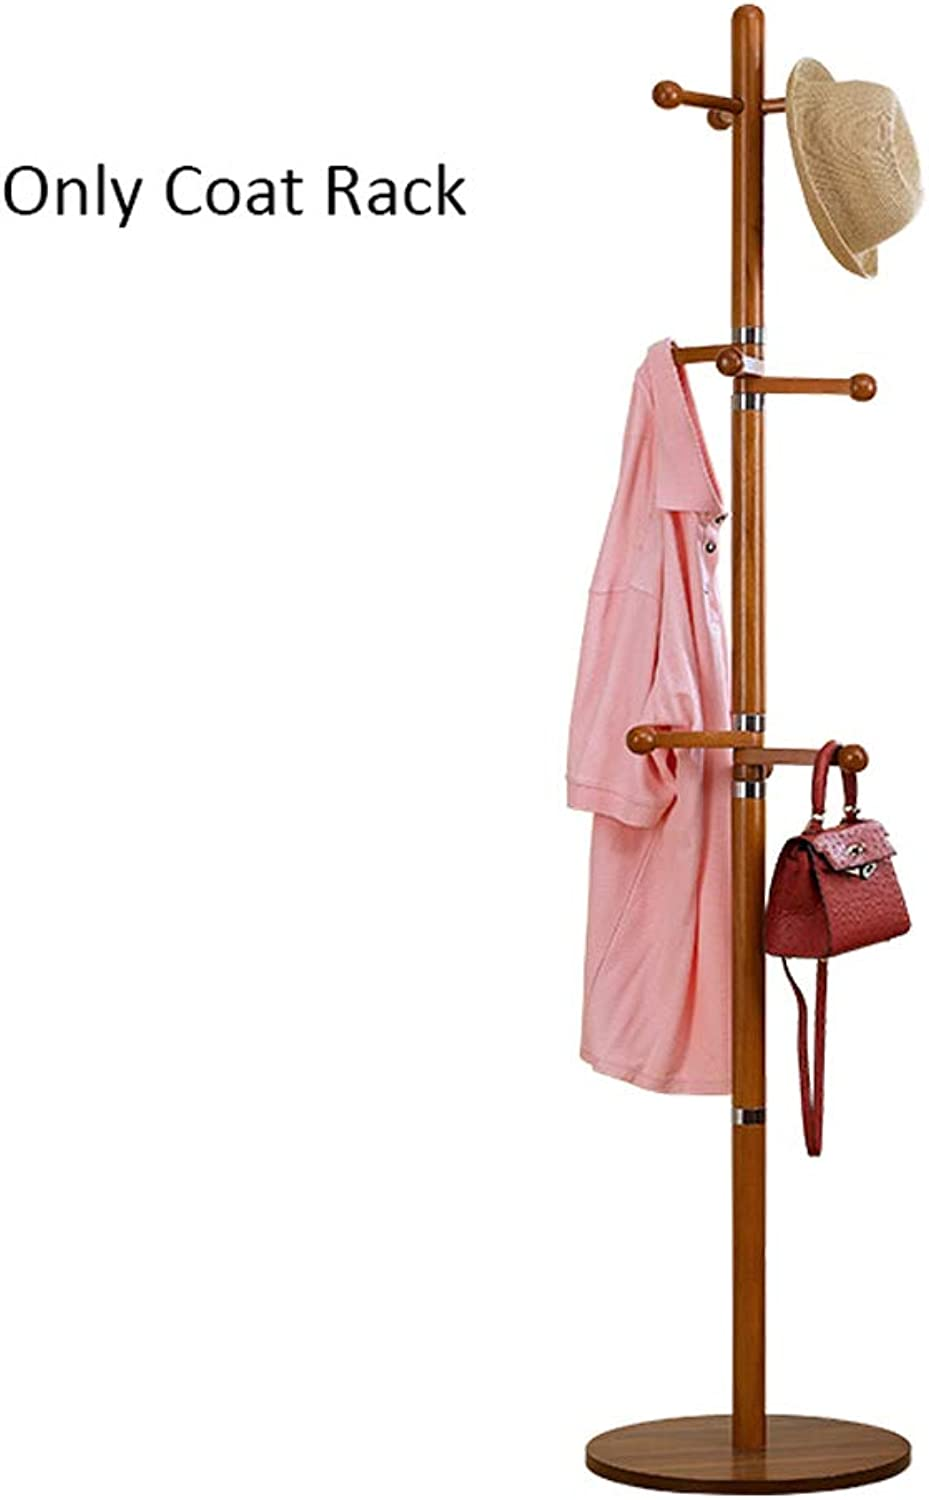 Rubber Solid Wood Coat Rack Bedroom Nordic Simple Racks redatable Hanger greenical Clothes Rack Creative Storage Rack